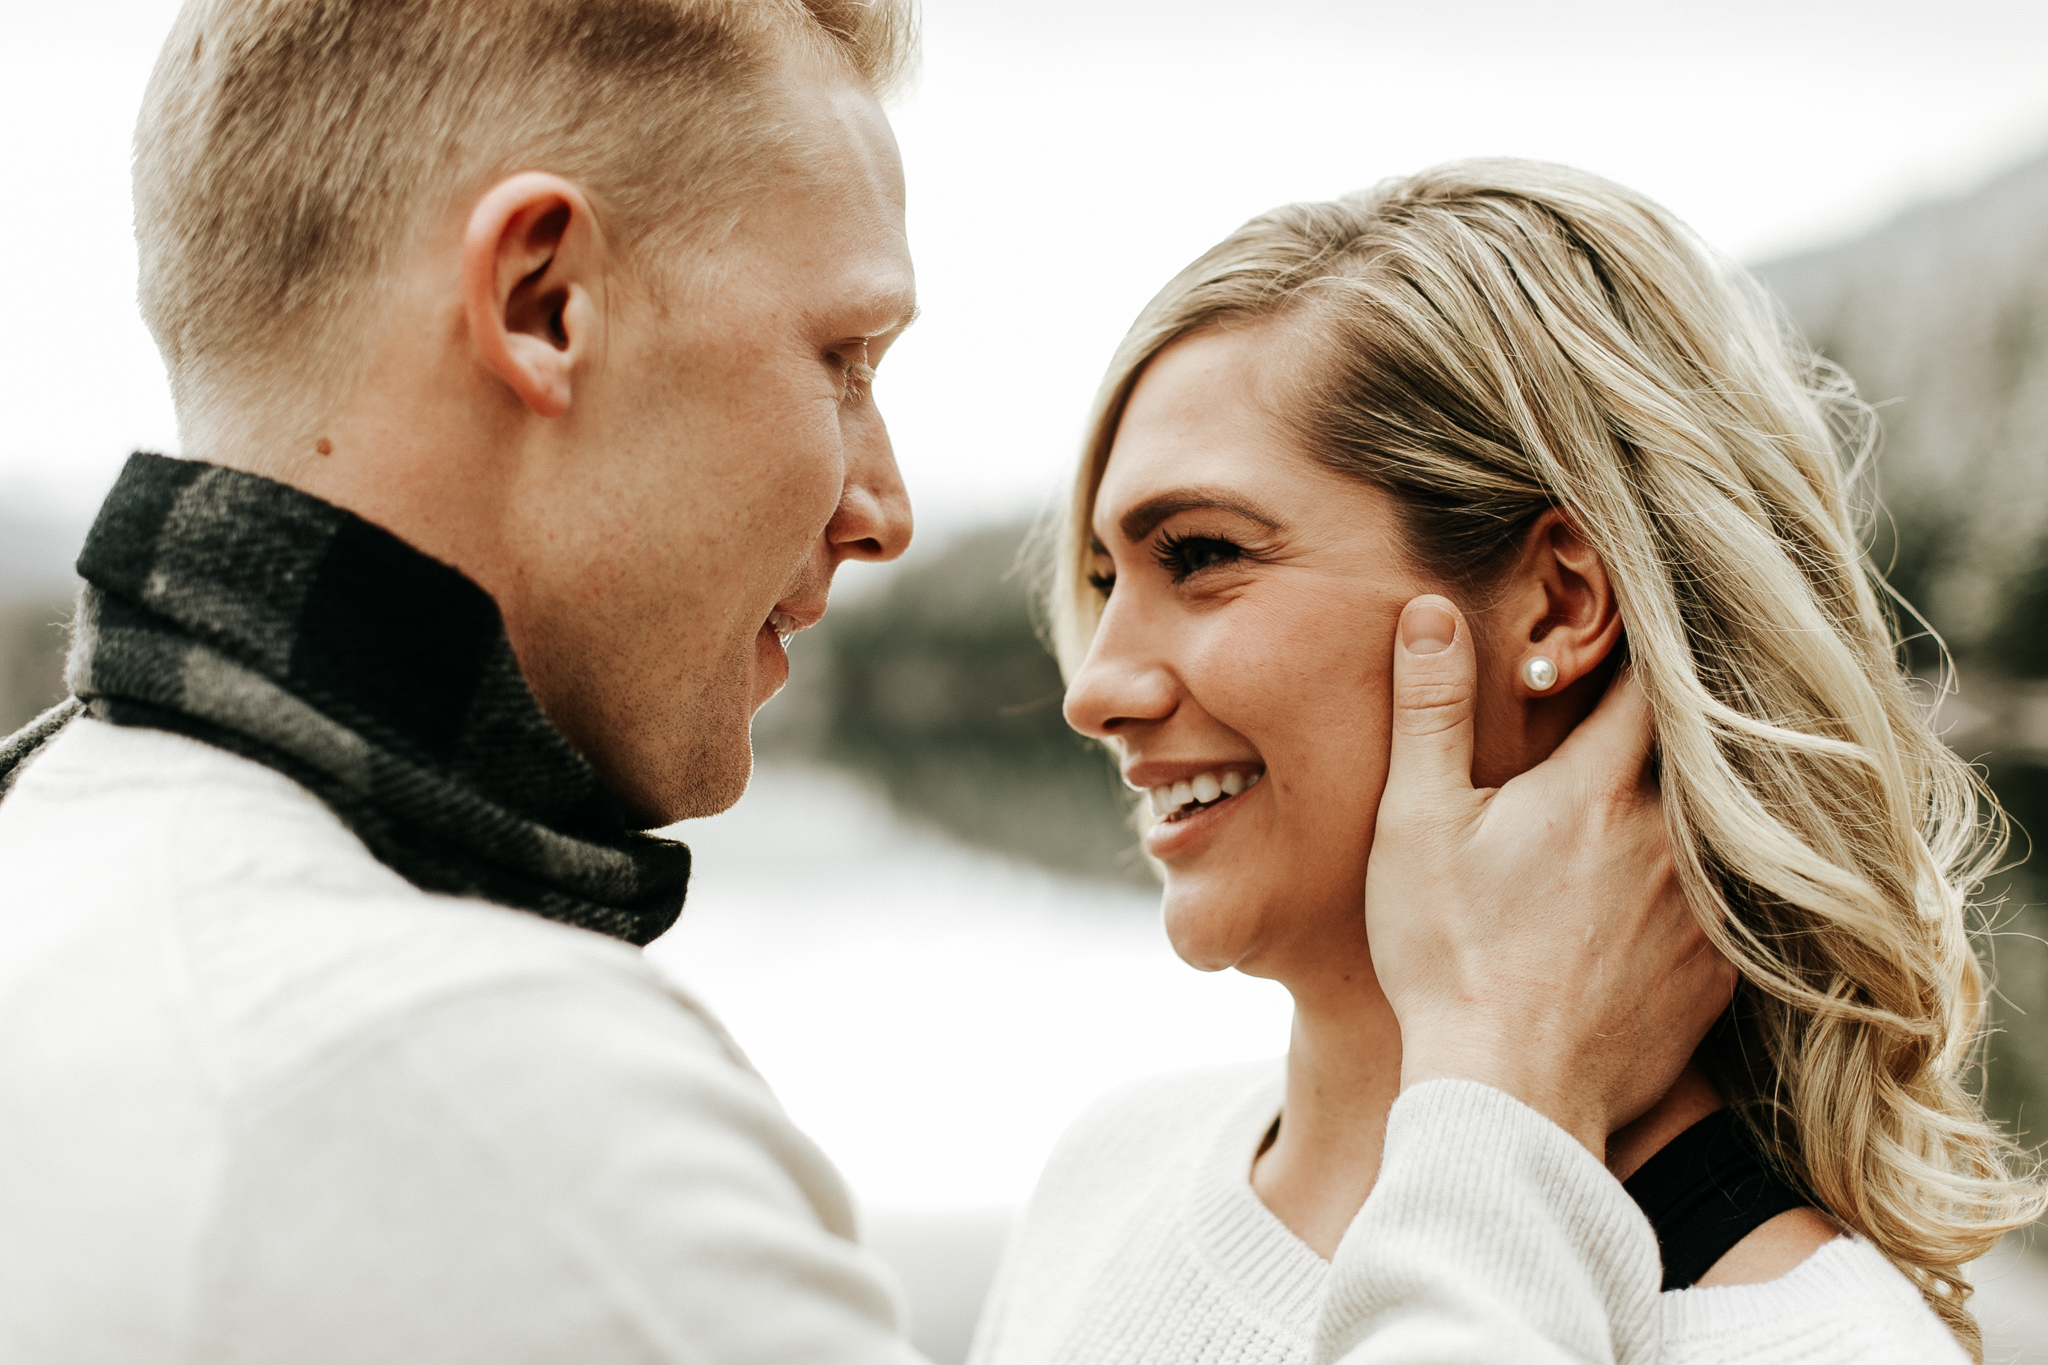 love-and-be-loved-photography-mountain-engagement-ashlyn-rob-perfect-fit-4-u-photo-image-picture-16.jpg